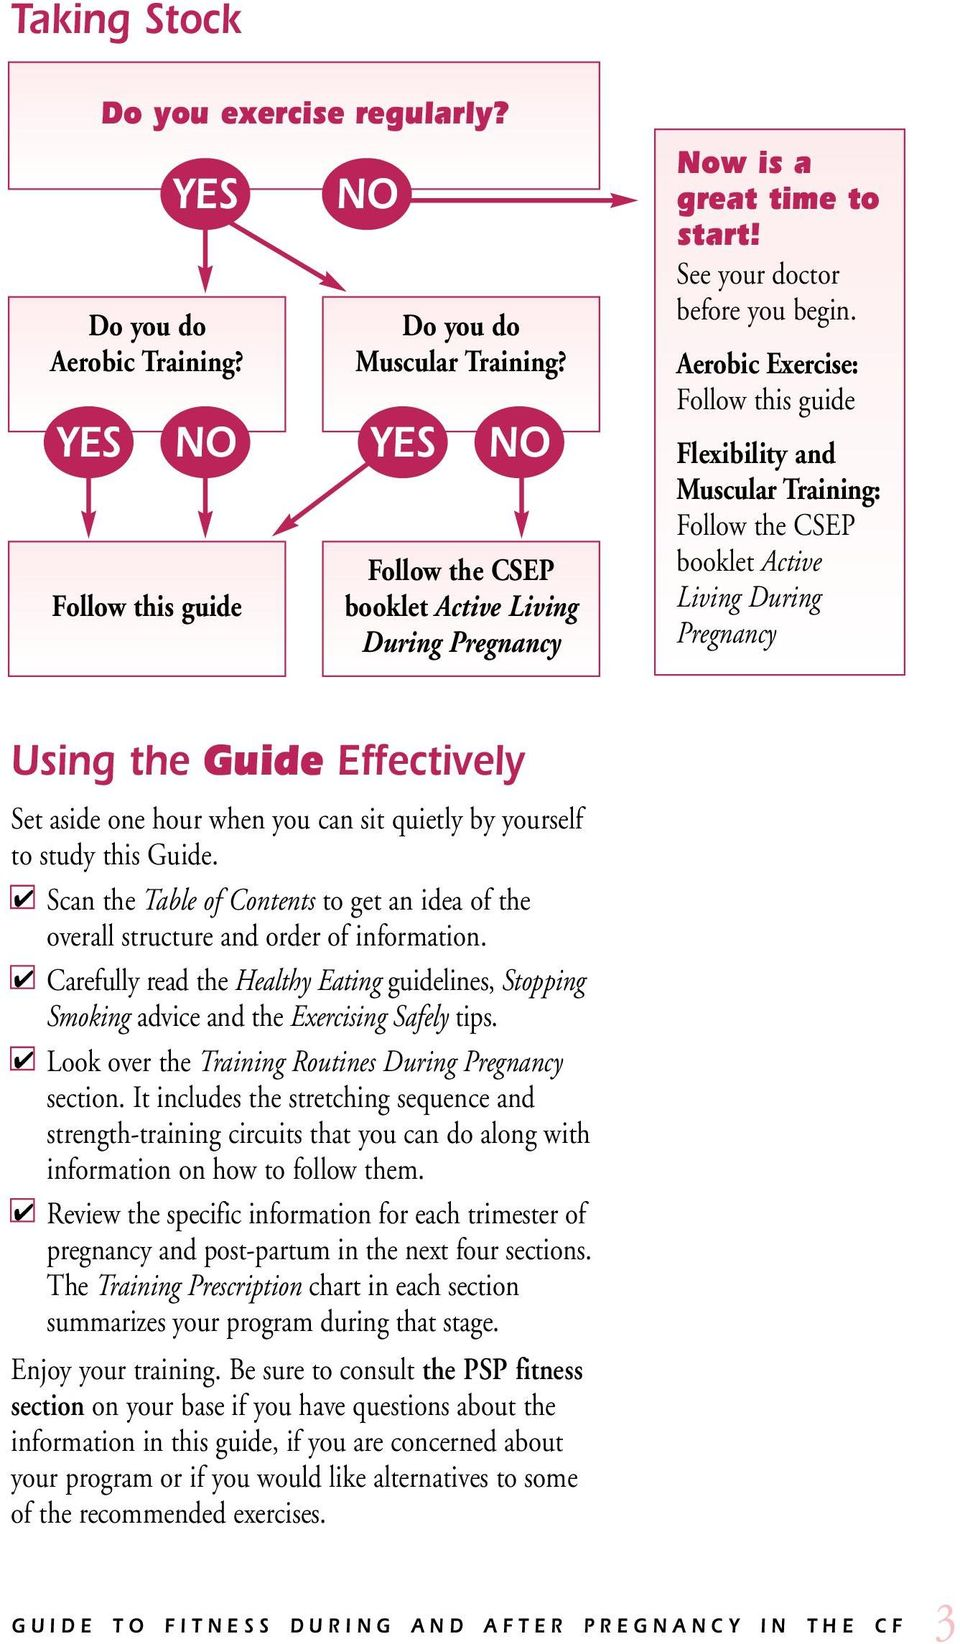 Aerobic Exercise: Follow this guide Flexibility and Muscular Training: Follow the CSEP booklet Active Living During Pregnancy Using the Guide Effectively Set aside one hour when you can sit quietly